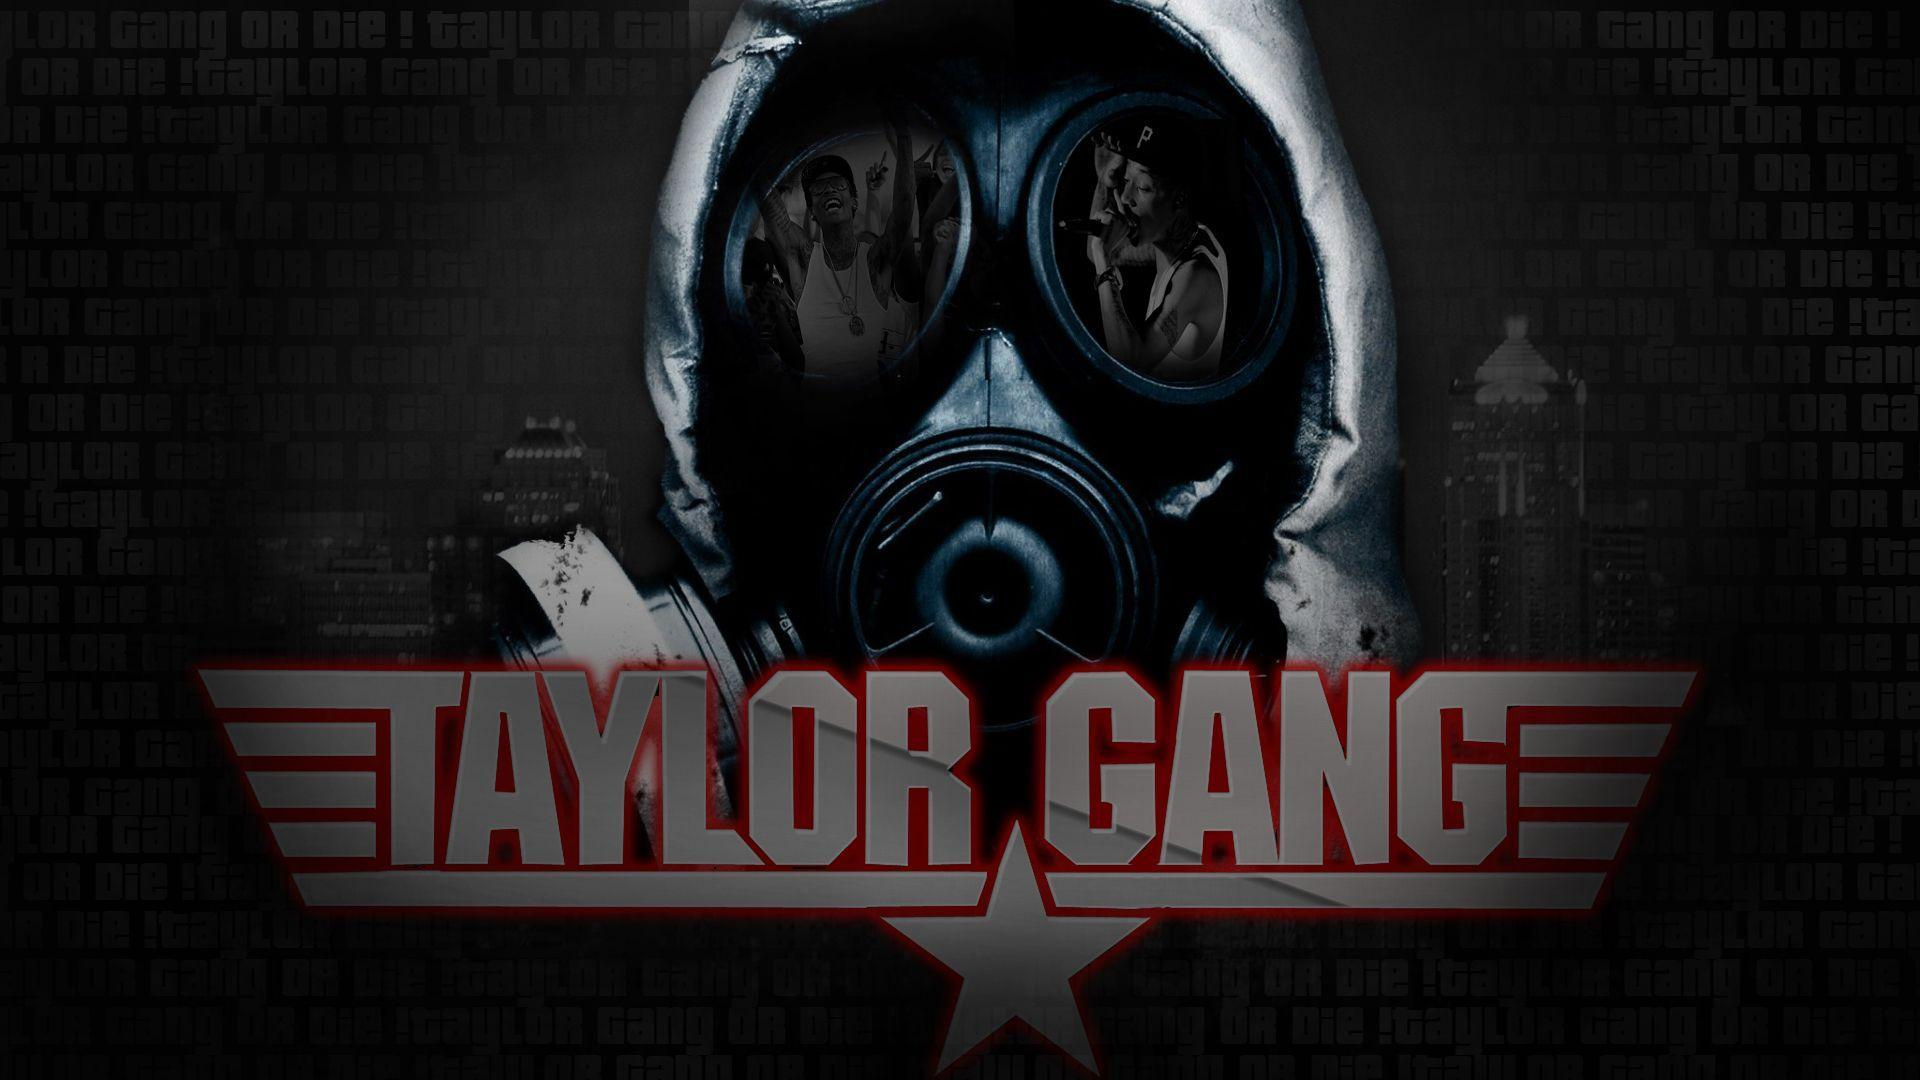 Wiz Khalifa Taylor Gang Wallpaper - WallpaperSafari